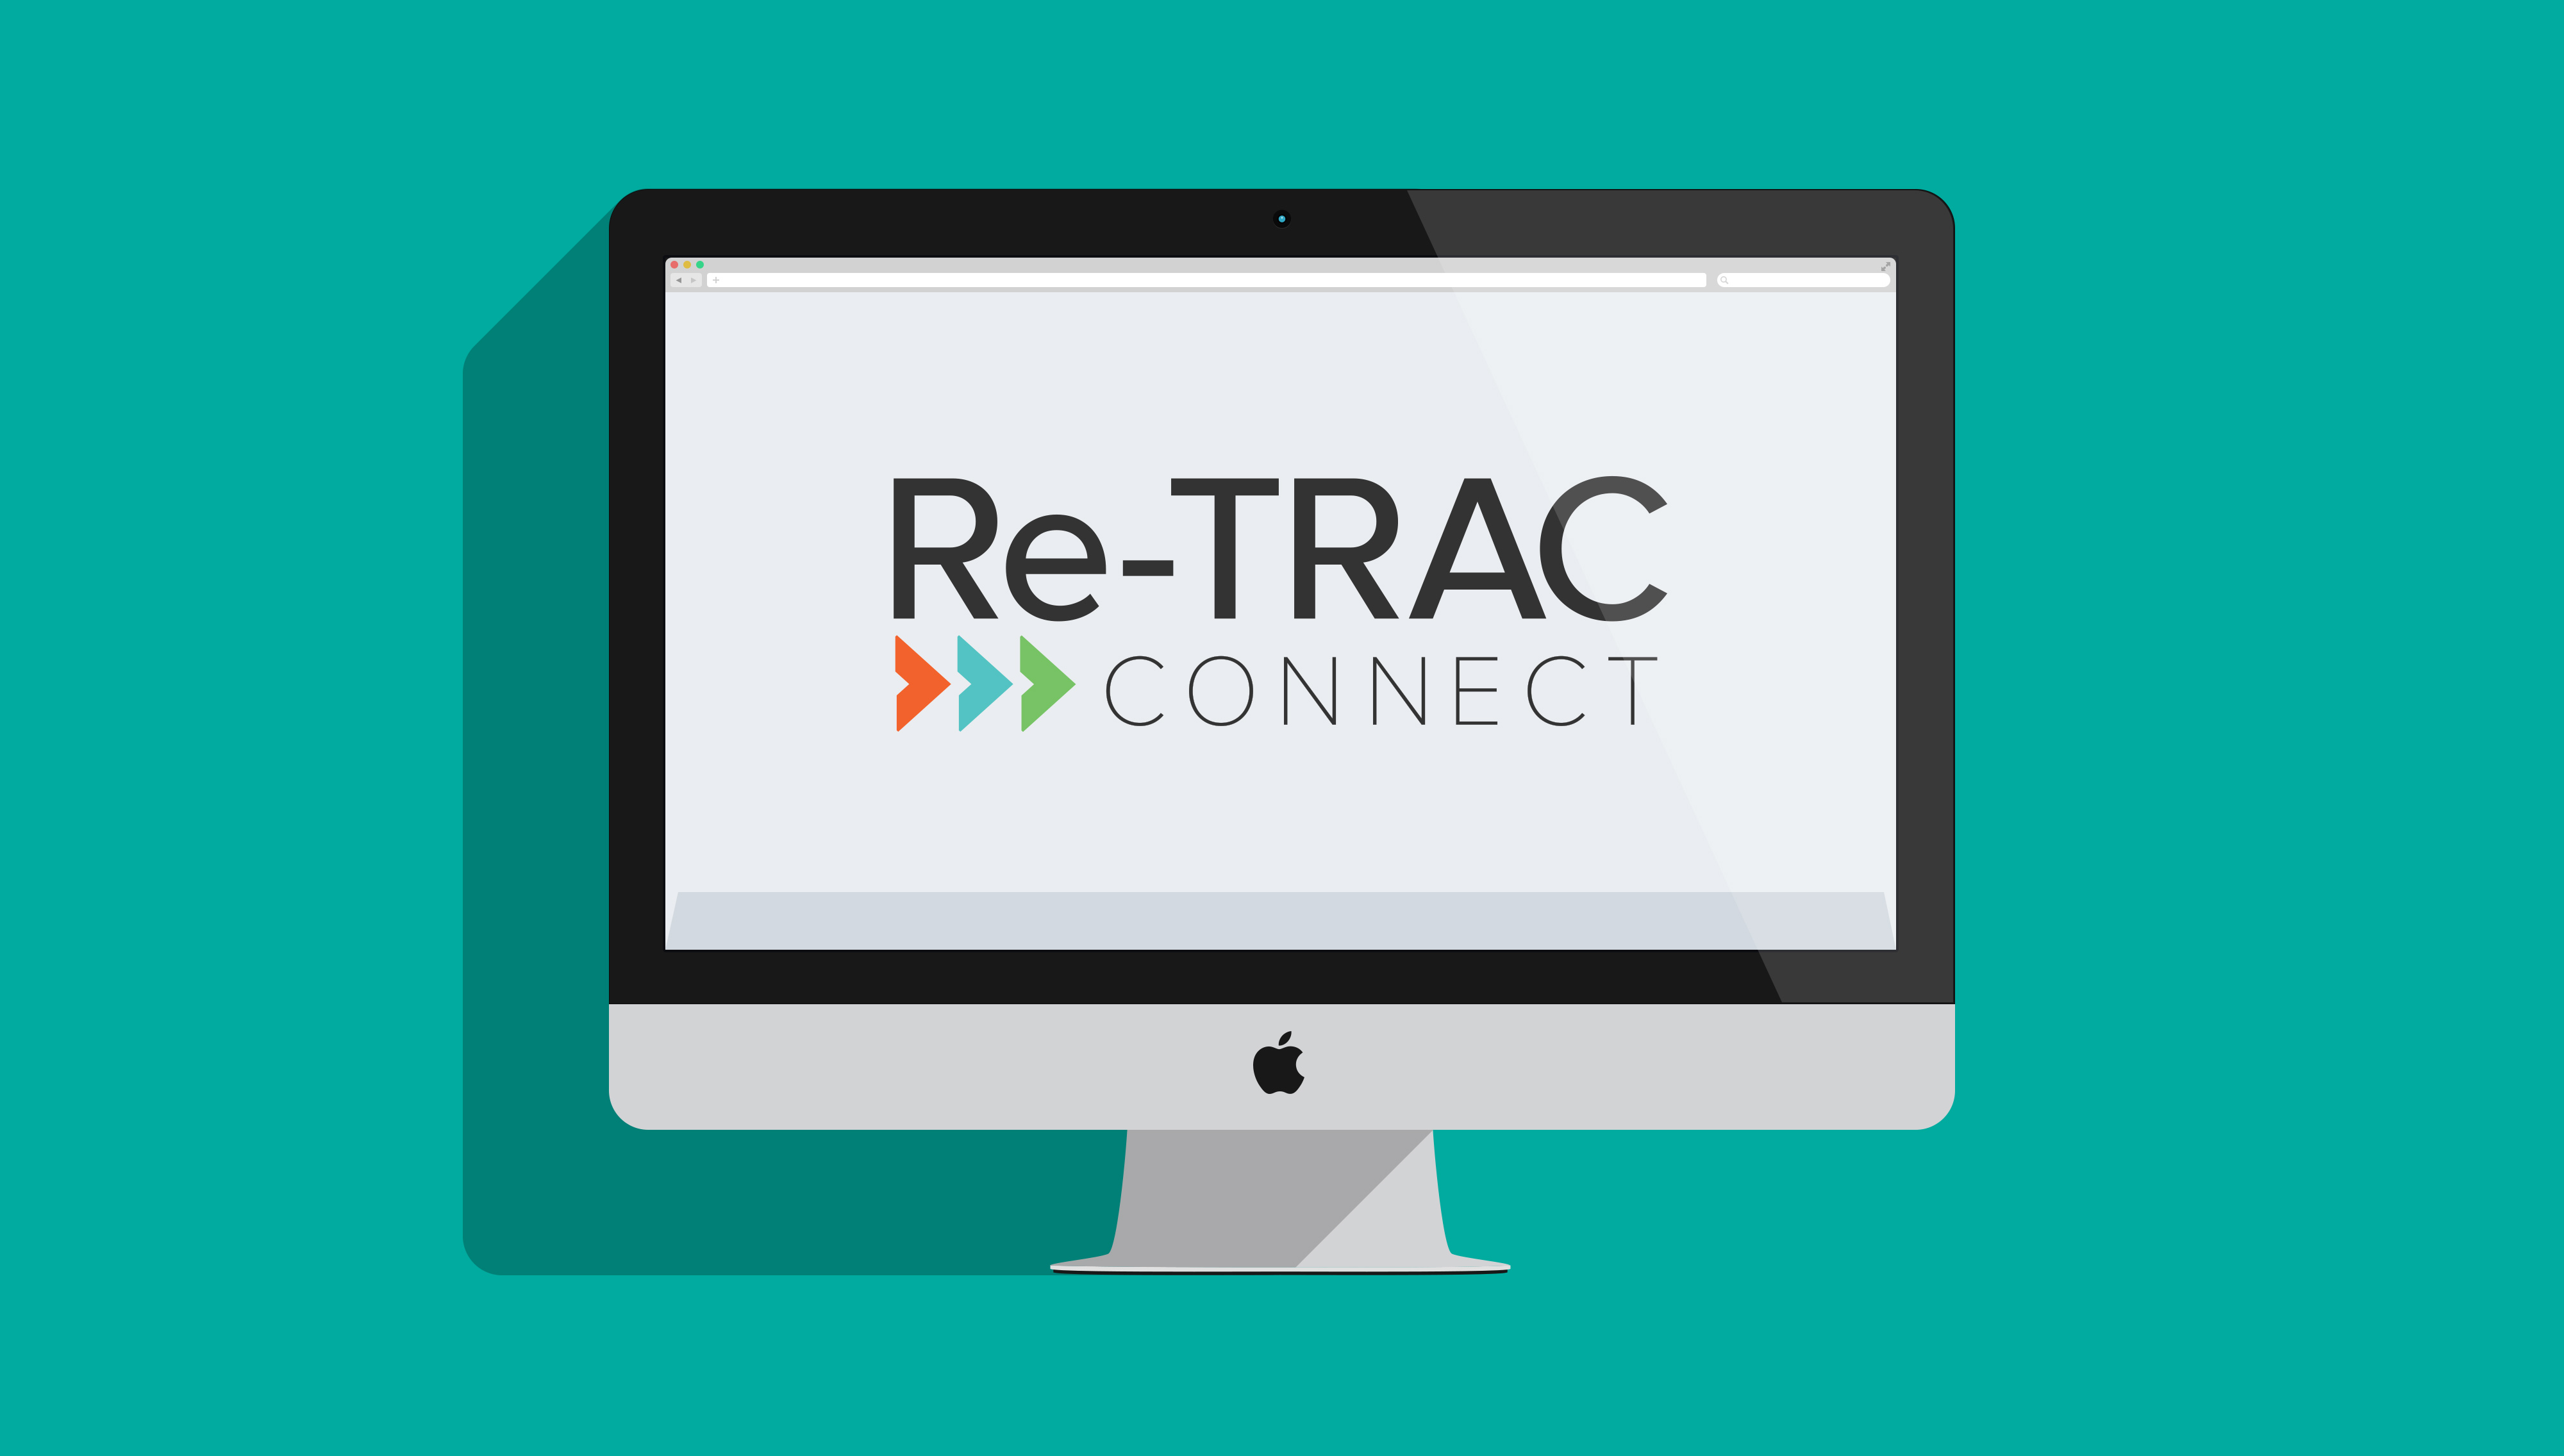 Re-TRAC Connect iMac